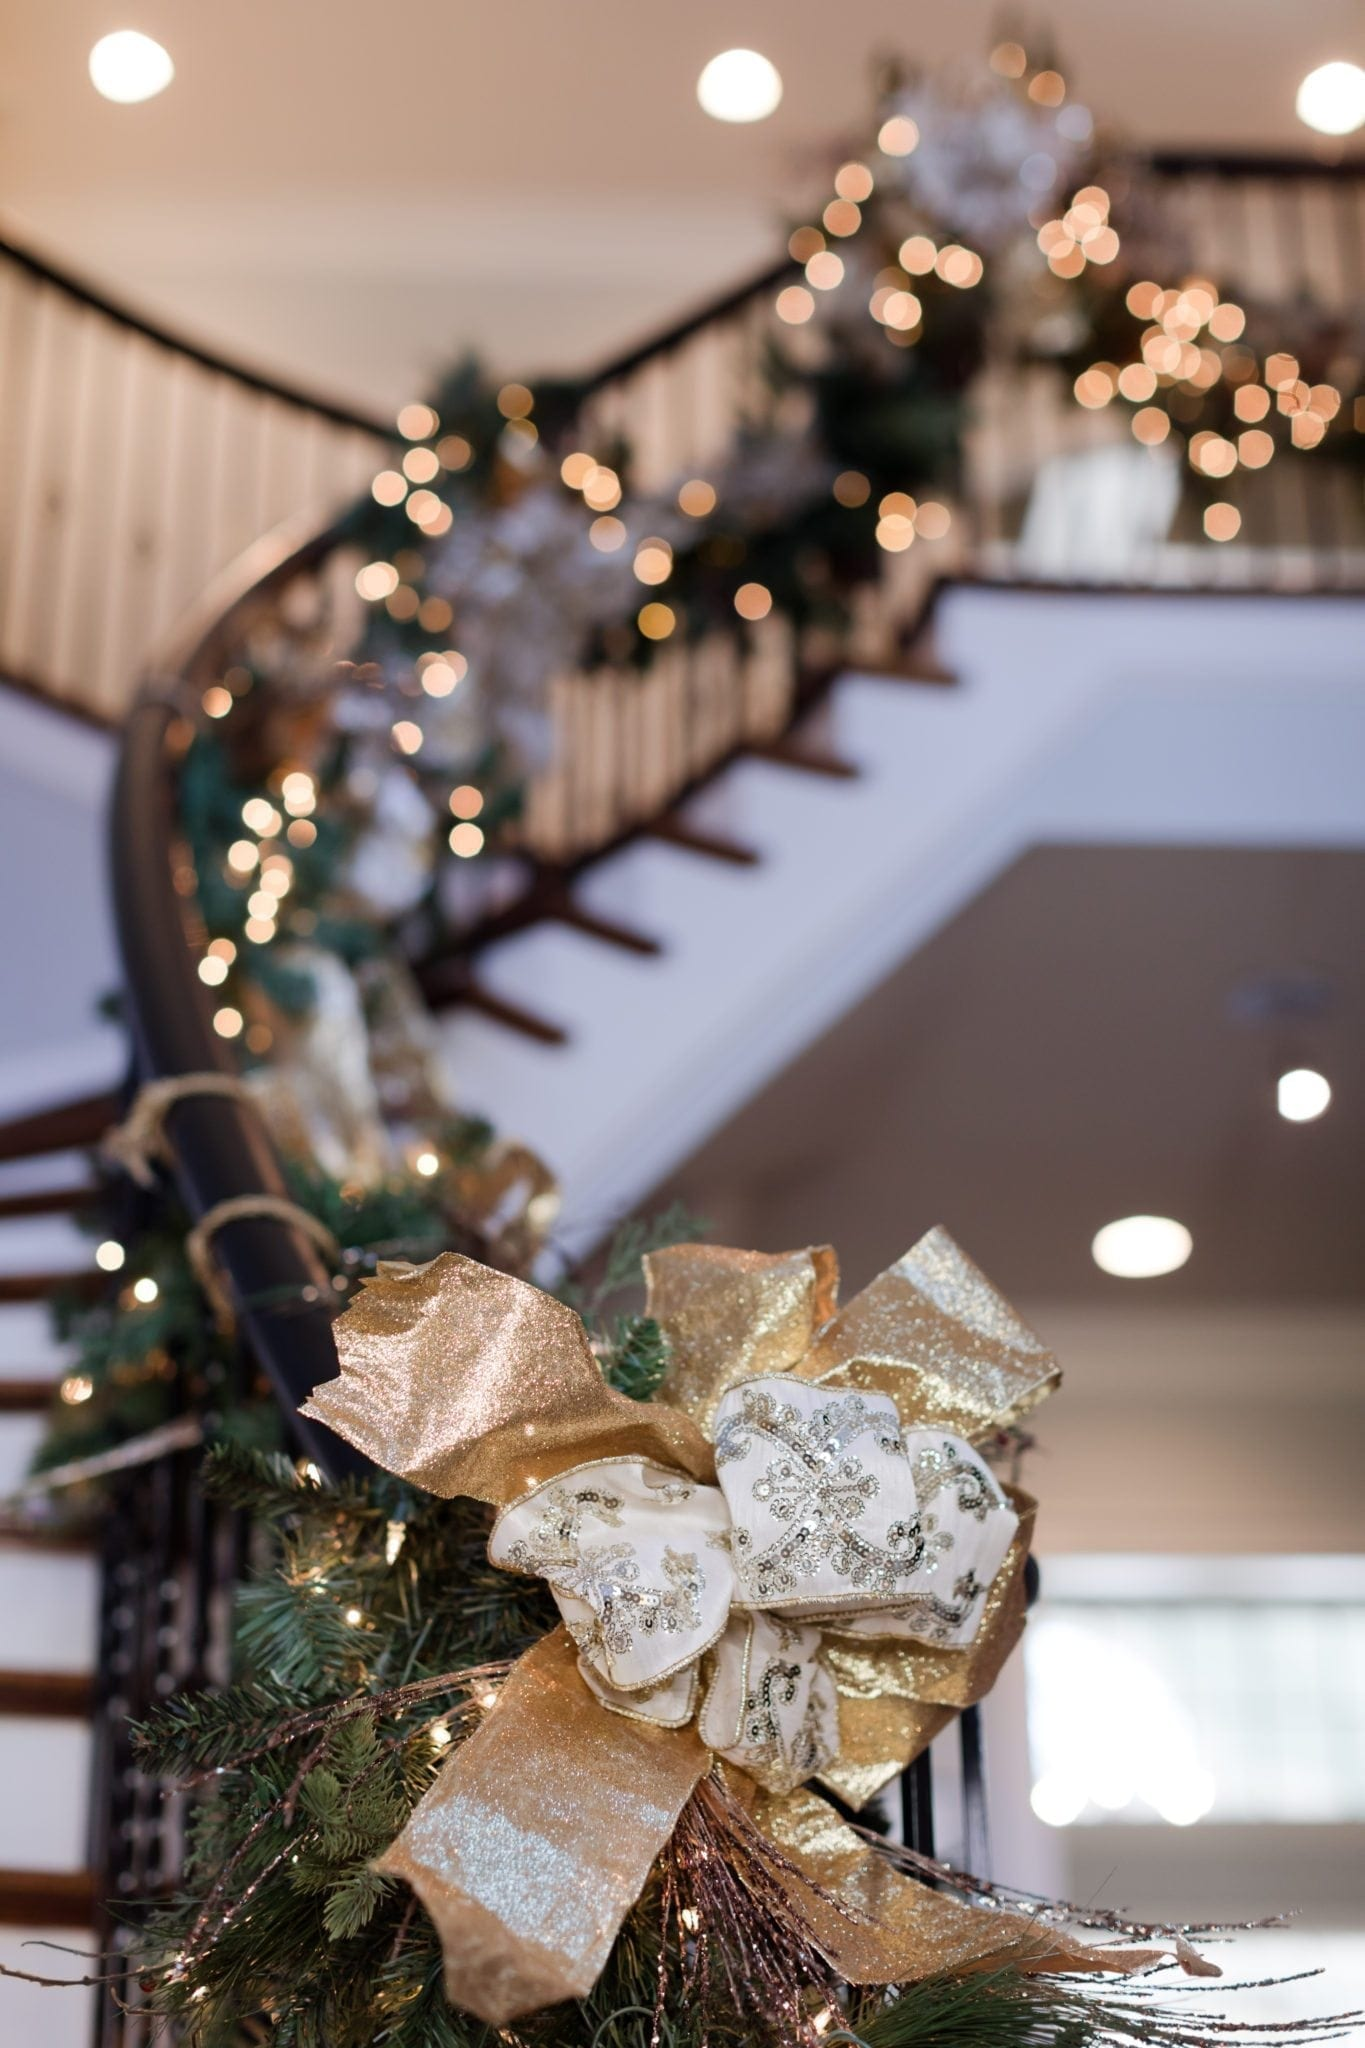 Gold and ivory box on artificial garland swagger on foyer staircase.